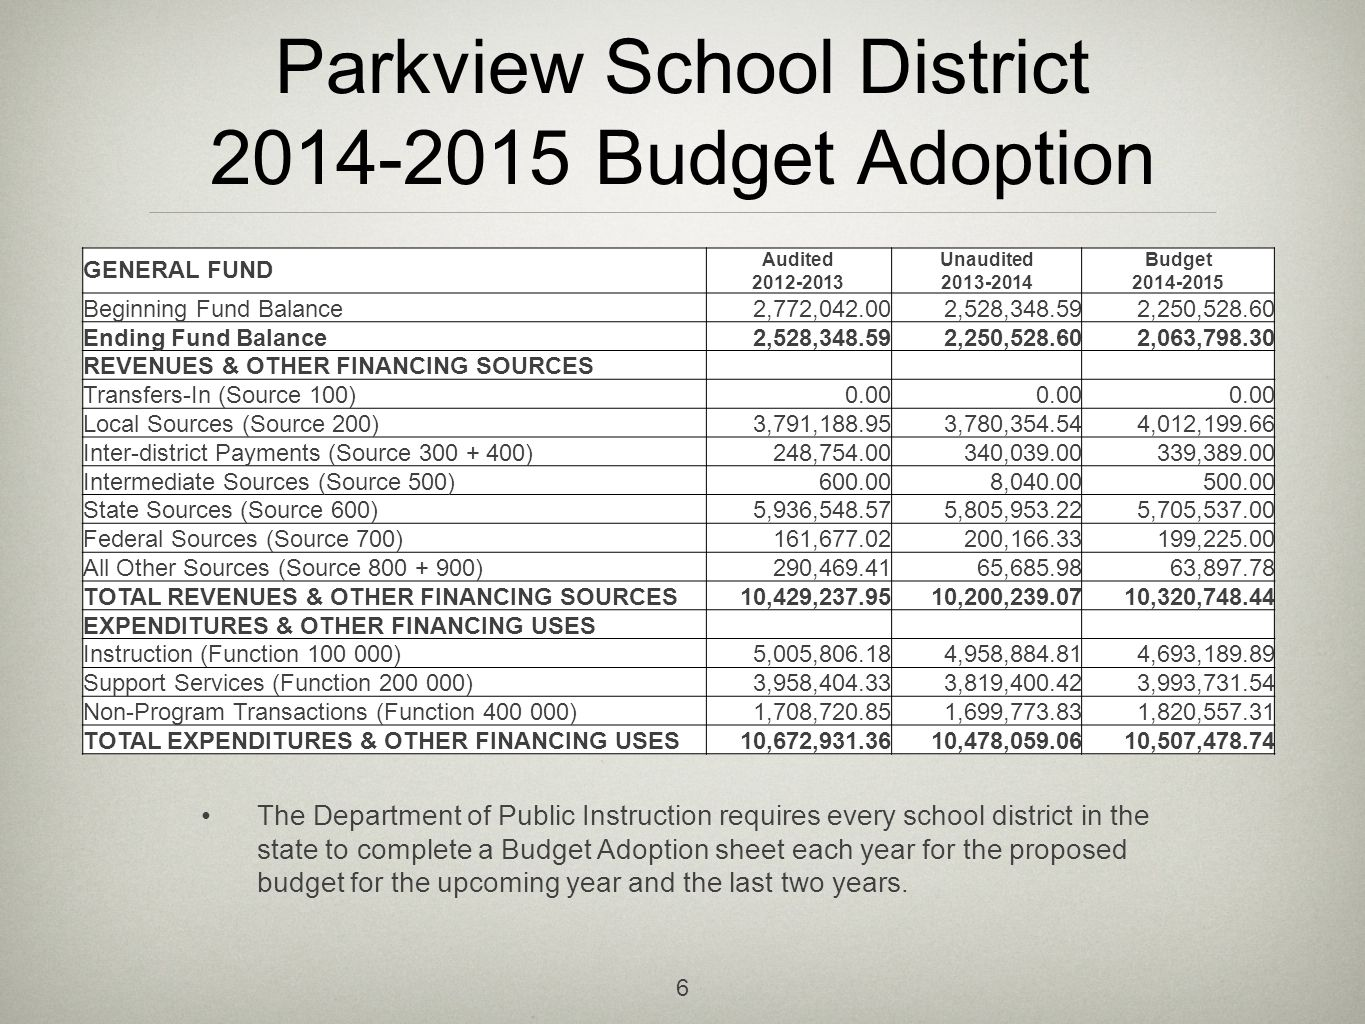 Parkview School District Open Enrollment In addition to declining enrollment, the Parkview School District also has more students enrolling out of the District than enrolling in through open enrollment.